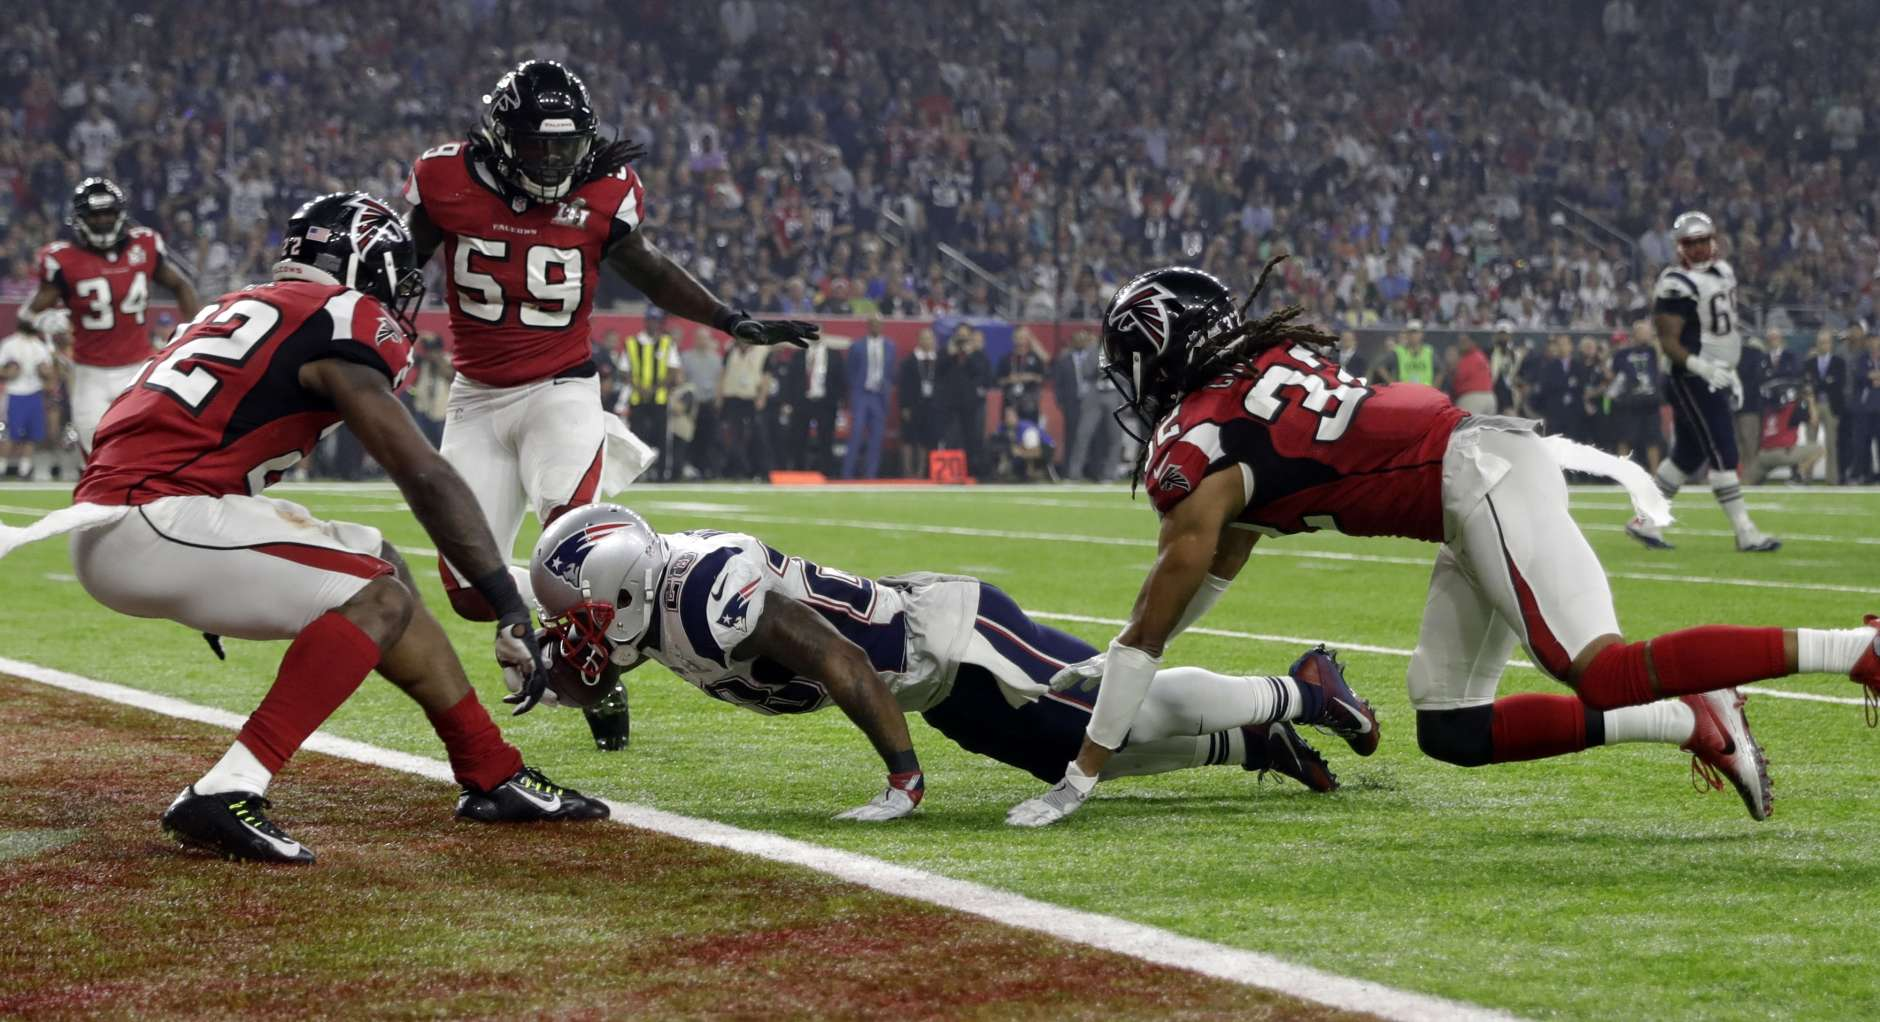 New England Patriots' James White gets into the end zone for a touchdown during the second half of the NFL Super Bowl 51 football game against the Atlanta Falcons Sunday, Feb. 5, 2017, in Houston. (AP Photo/David J. Phillip)